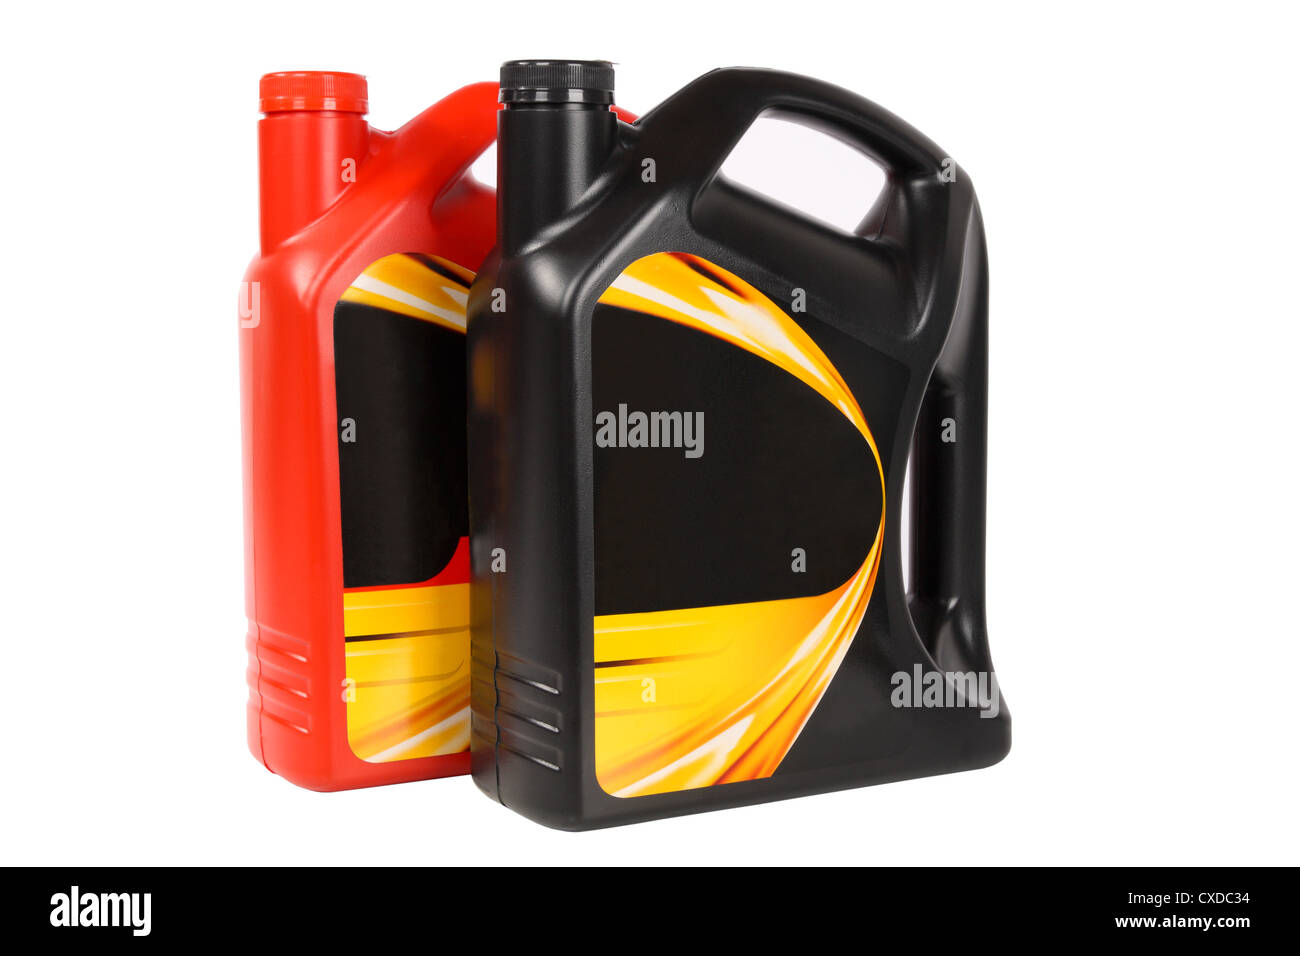 two bottle of engine oil - Stock Image